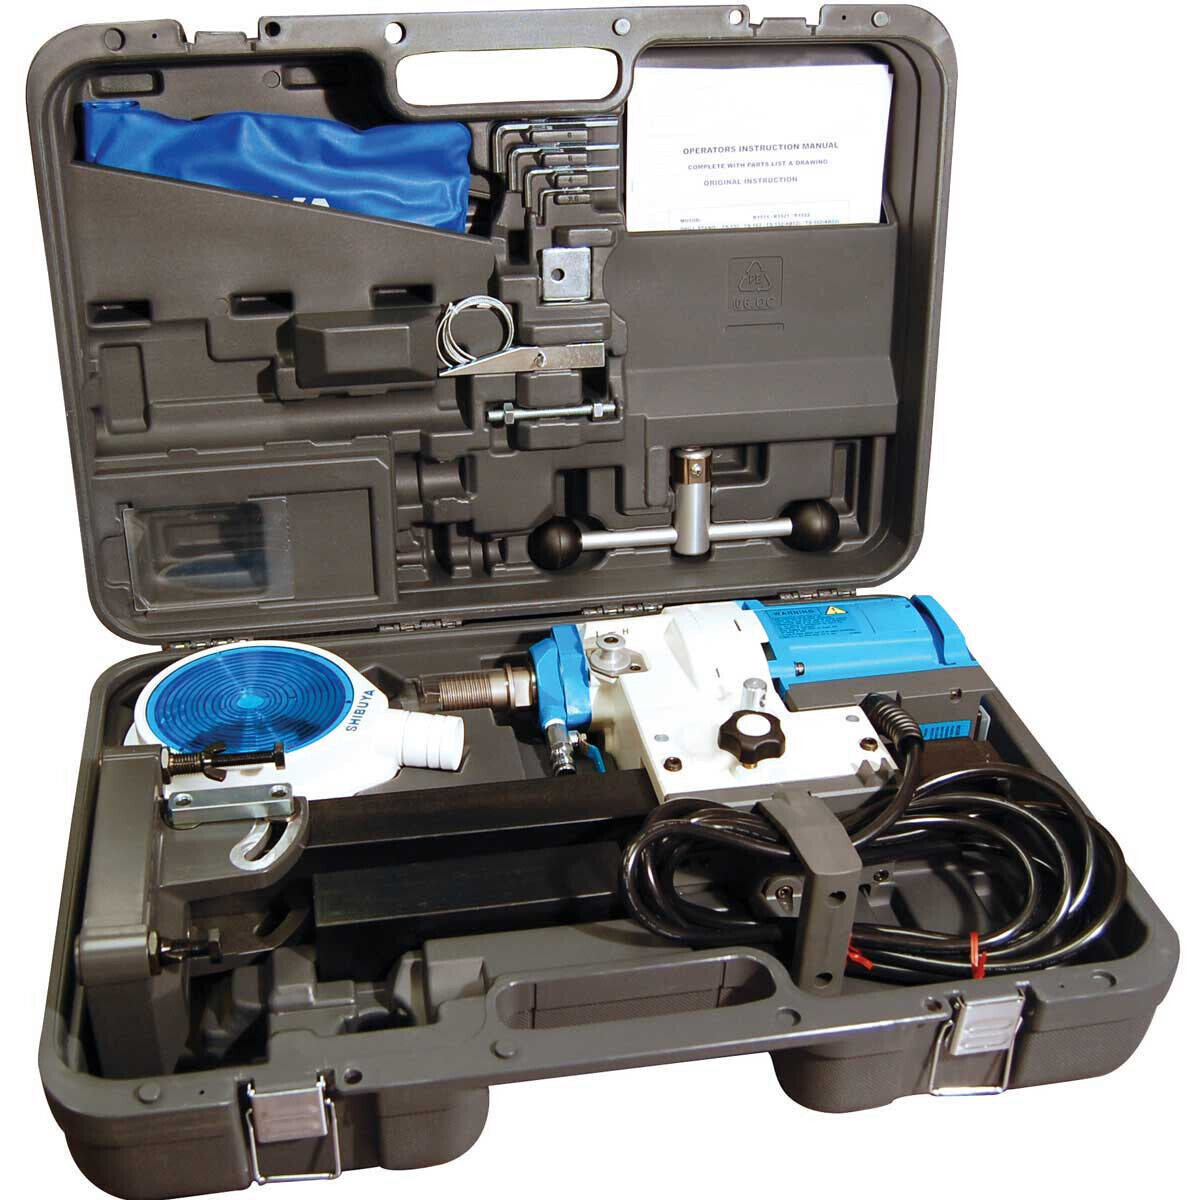 Diteq Blu-Drill TS-162 Core Drill with Carrying Case